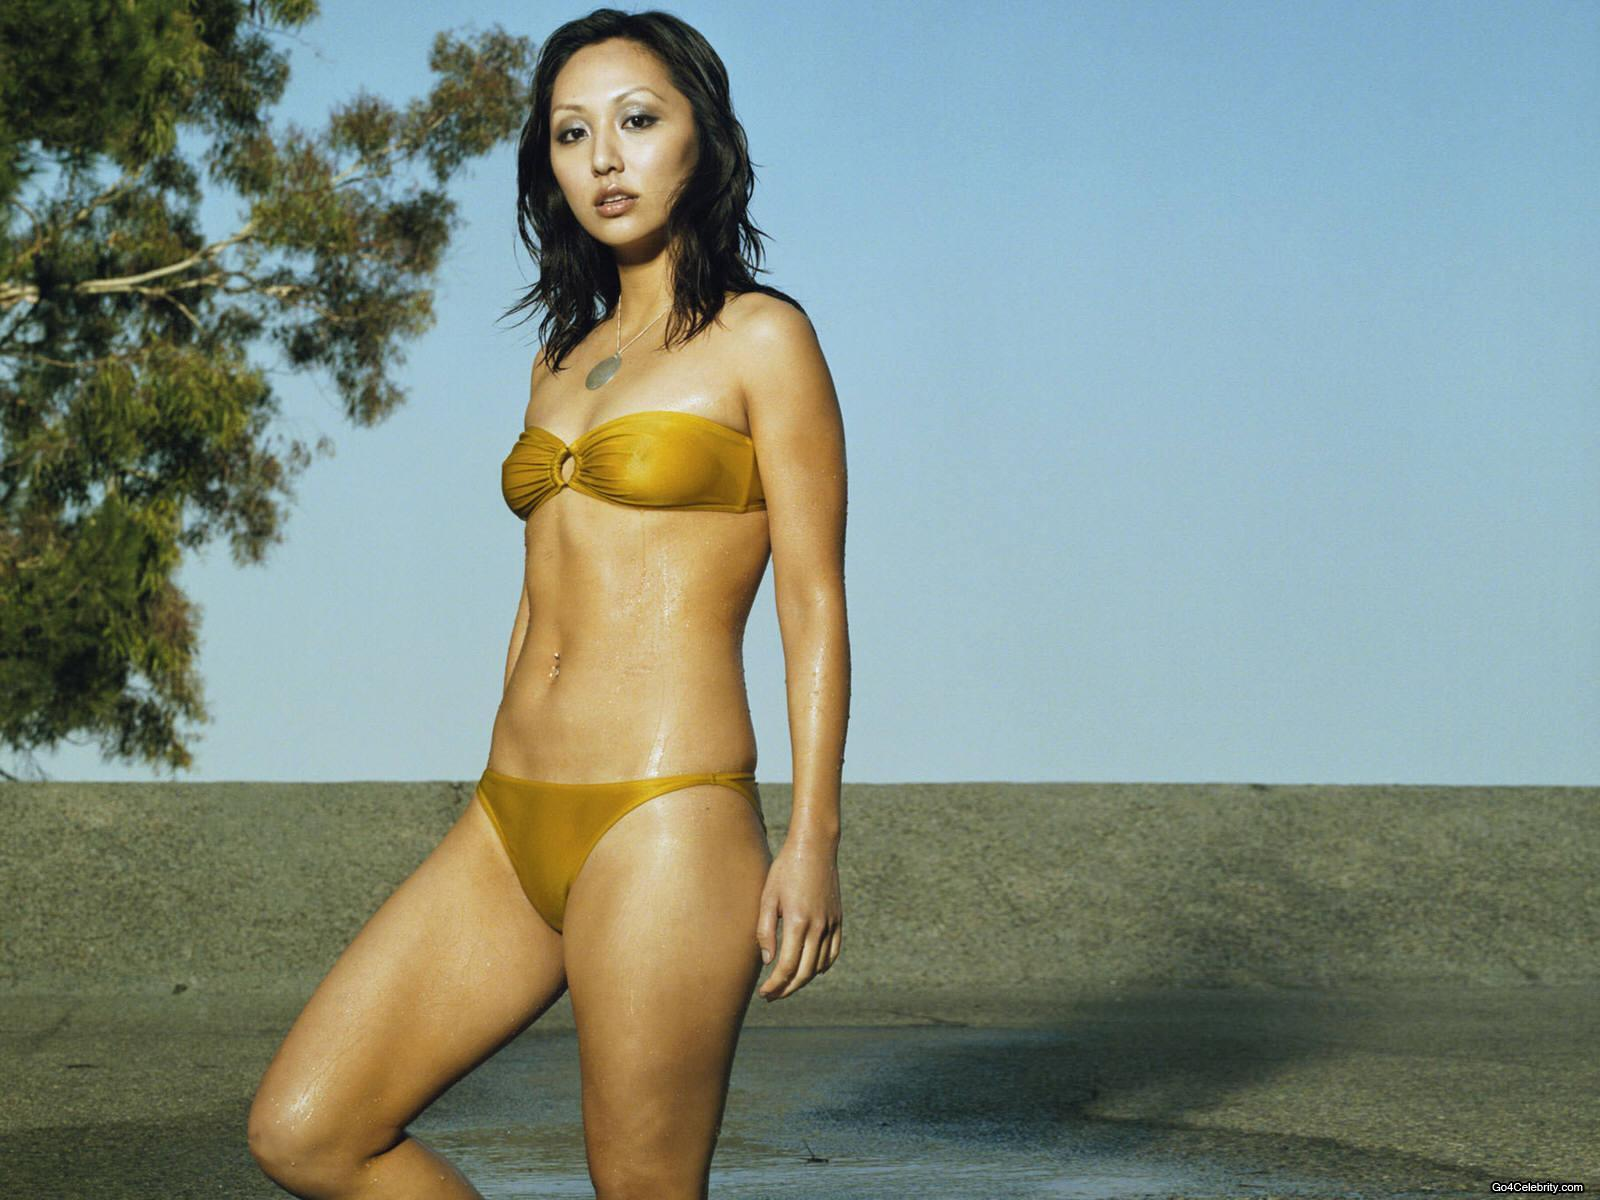 linda Park Celebrity HD Wallpaper